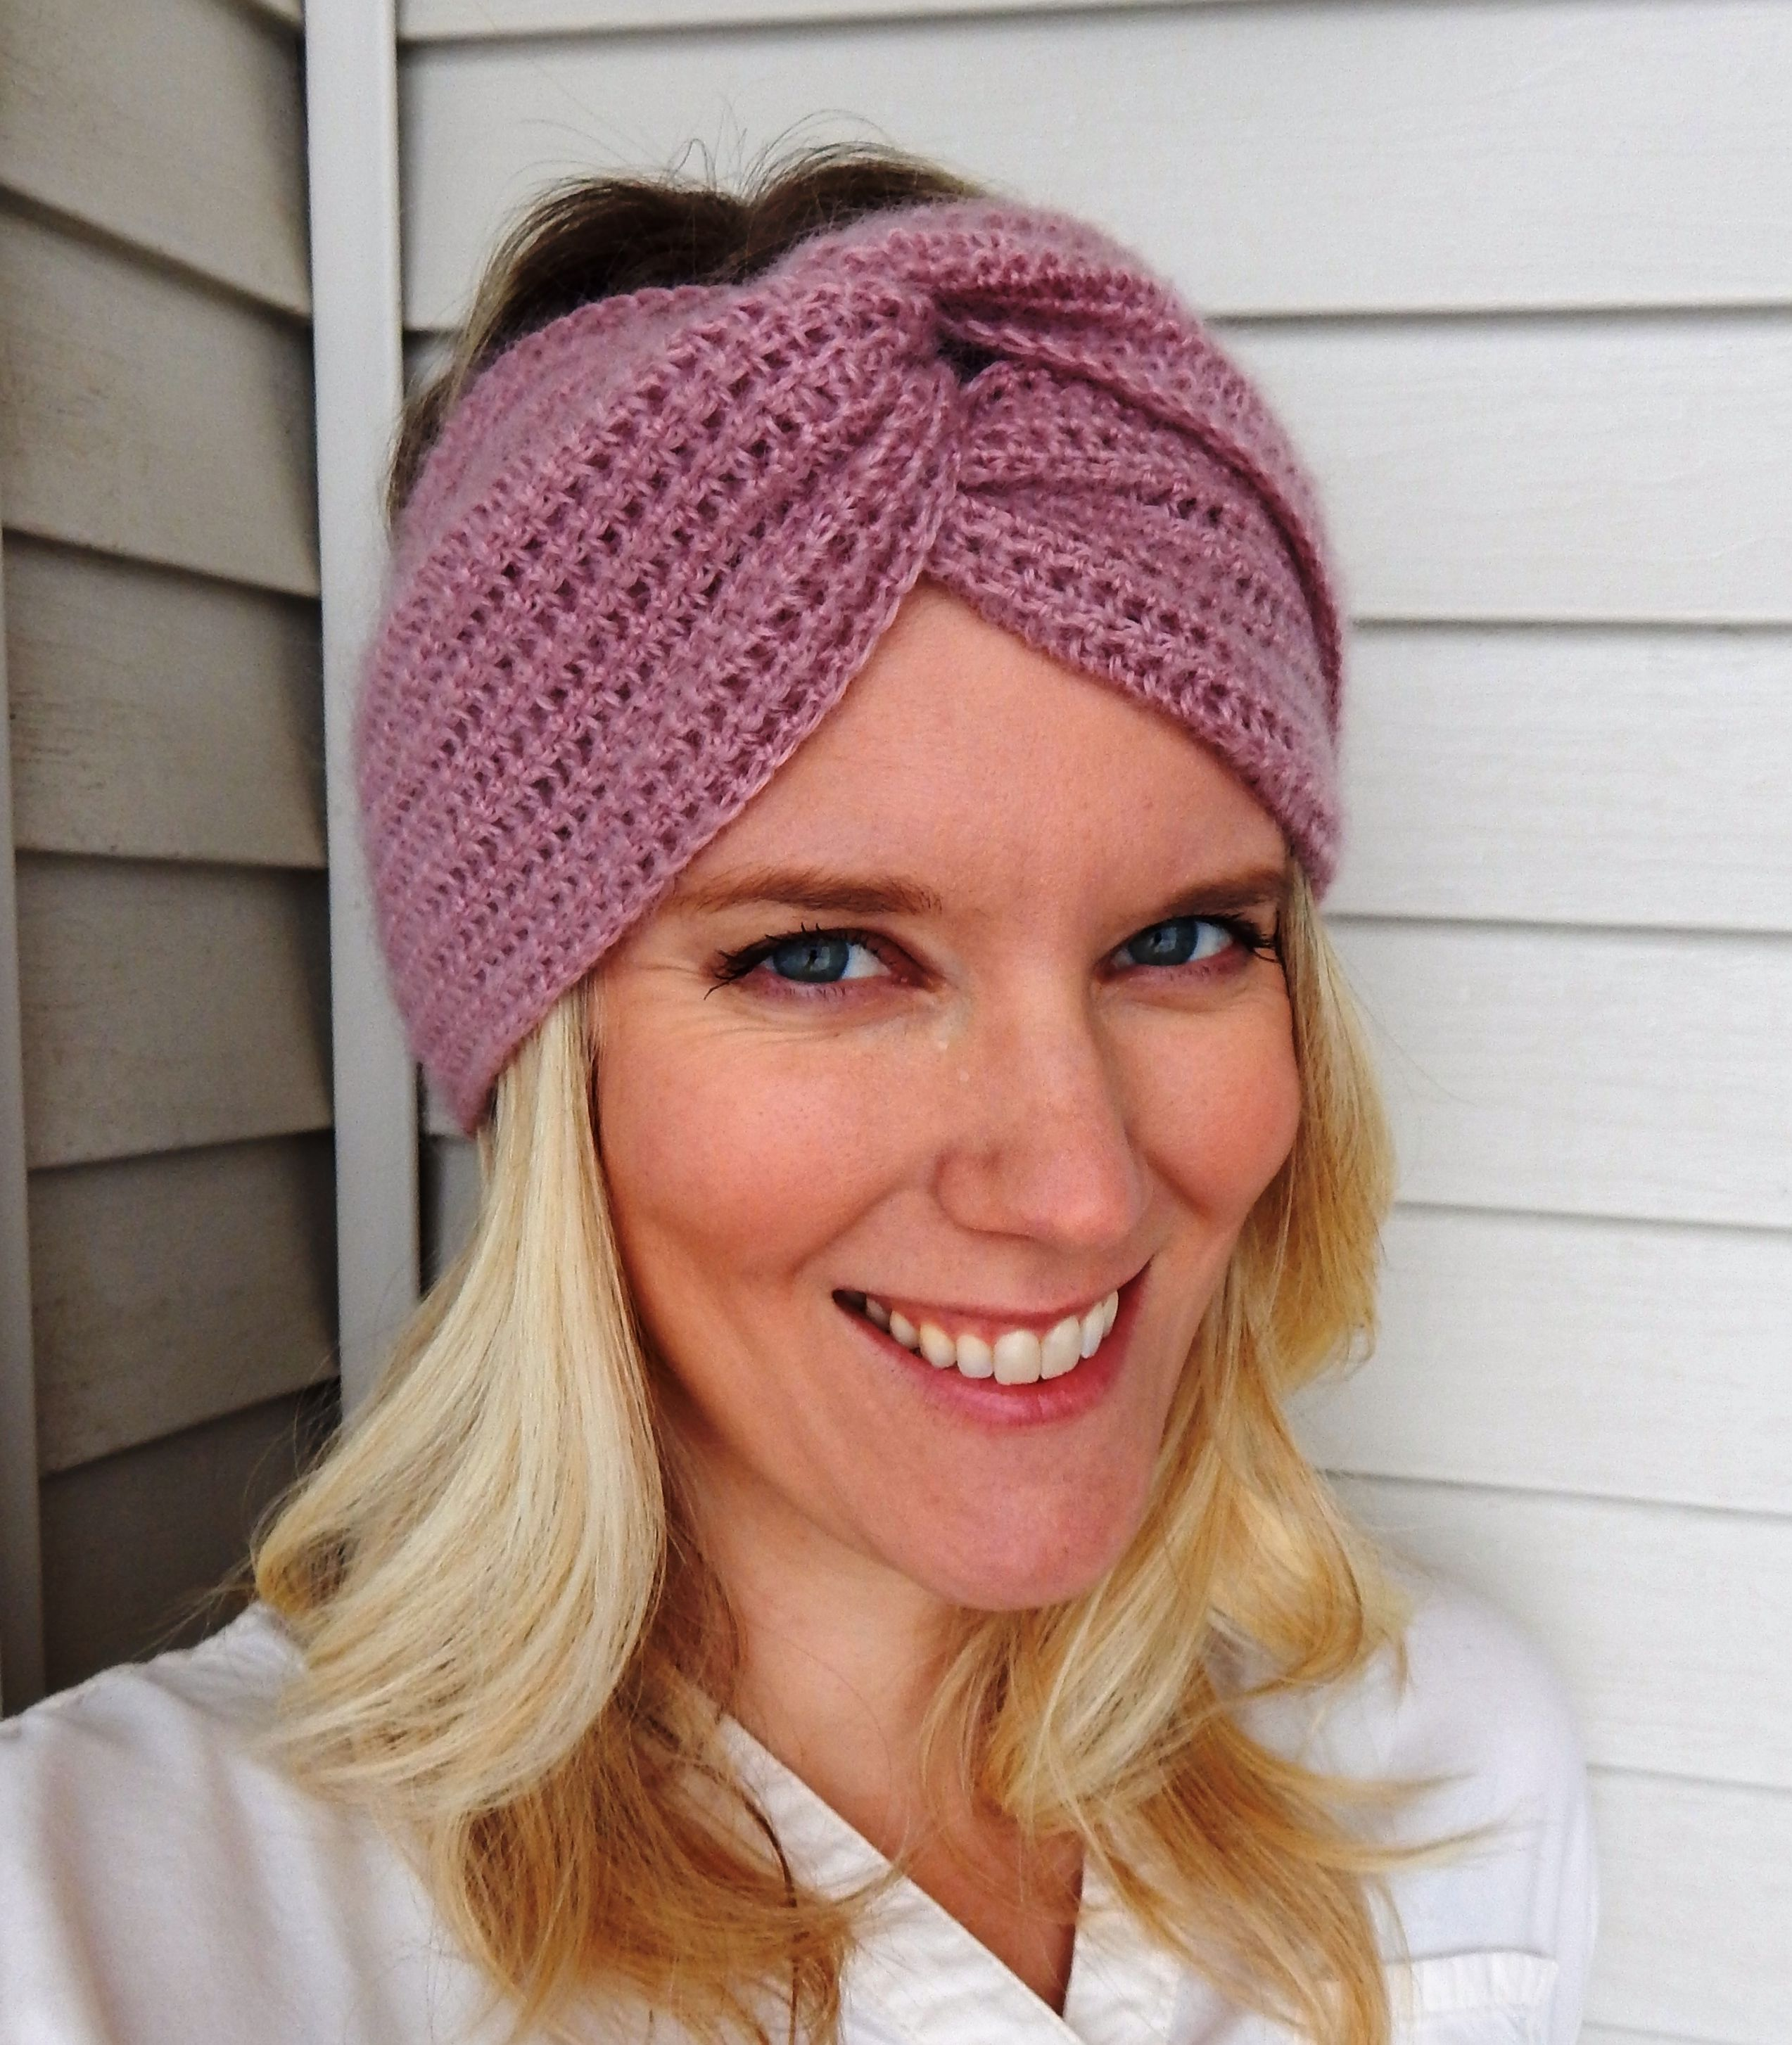 Ellie Headband | Pinterest | Free crochet, Crochet and Patterns